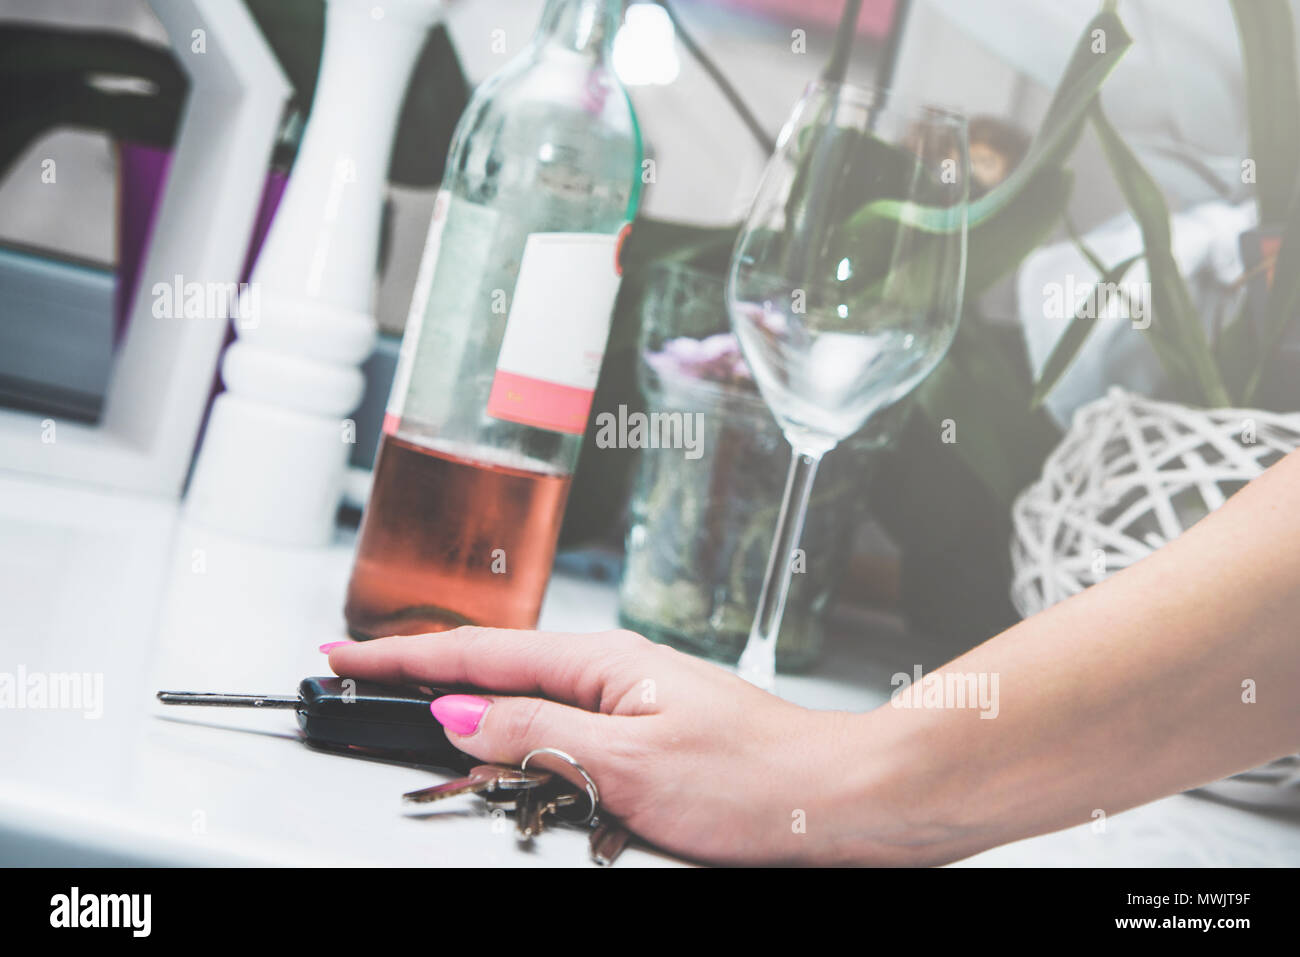 Alcohol and drinking alcohol and driving a car. I drink, I'm not driving. Irresponsibility, lack of reason. Woman holds car keys with hand, in the bac - Stock Image